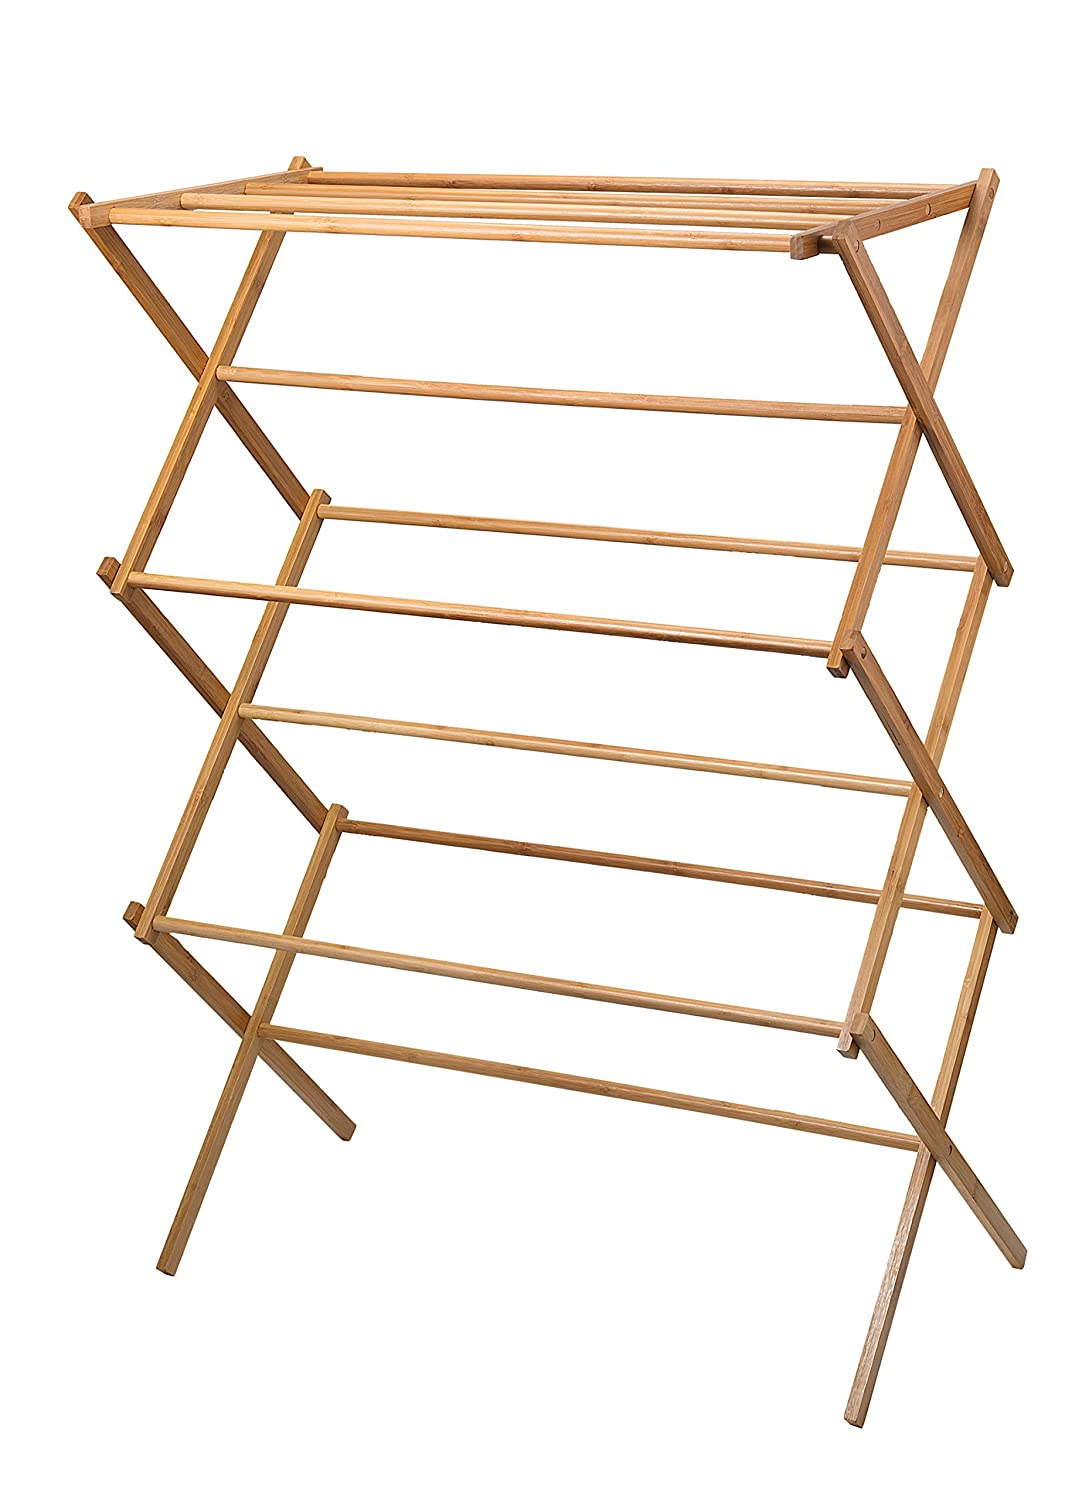 Amazoncom Home It Clothes Drying Rack Bamboo Wooden Clothes Rack